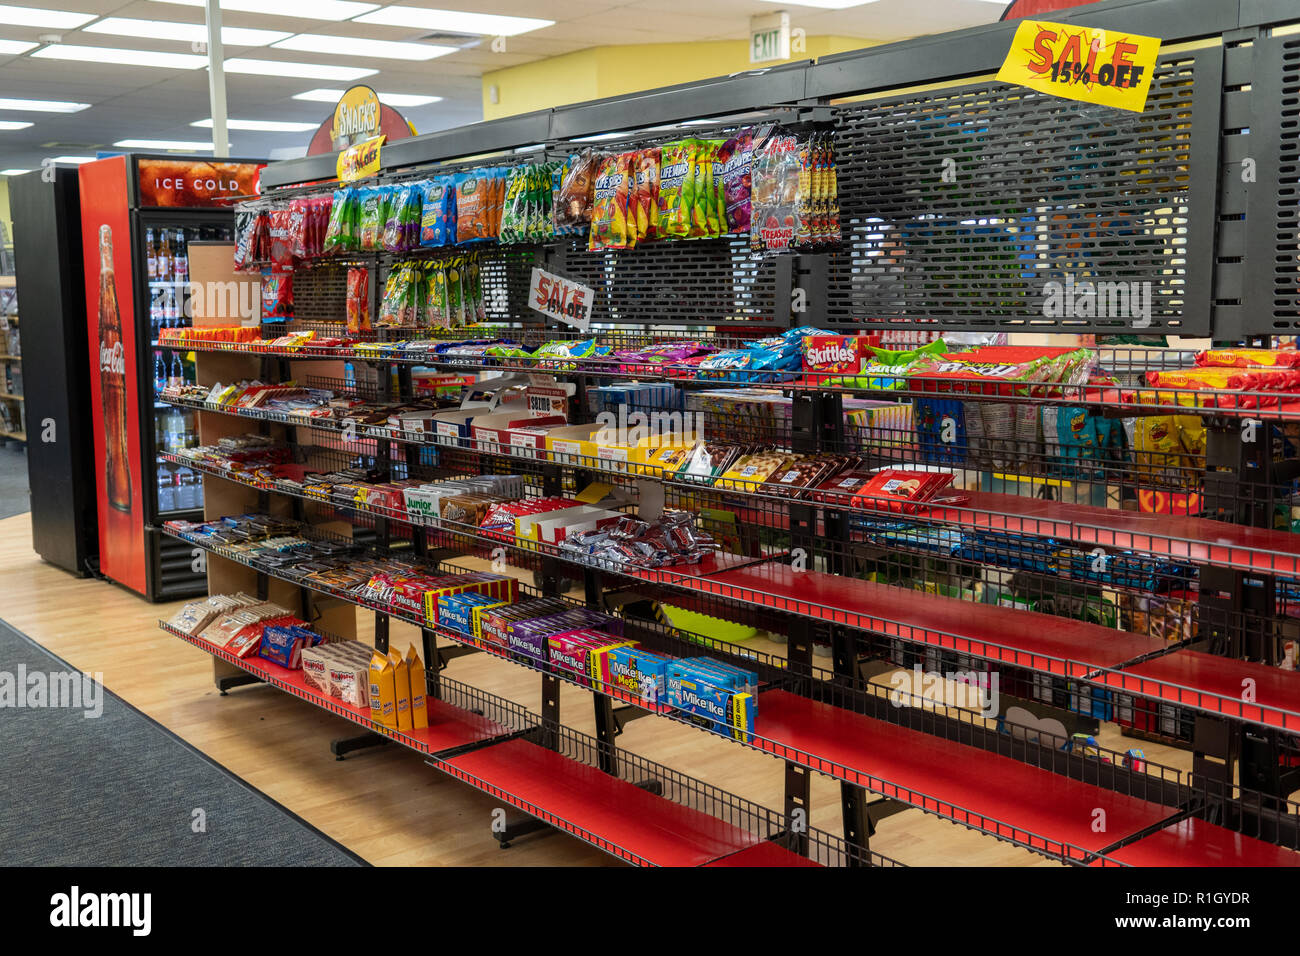 AUGUST 12 2018 - FAIRBANKS ALASKA: Snacks and candy aisle display inside of a closing Blockbuster video in its final liquidation days. Stock Photo